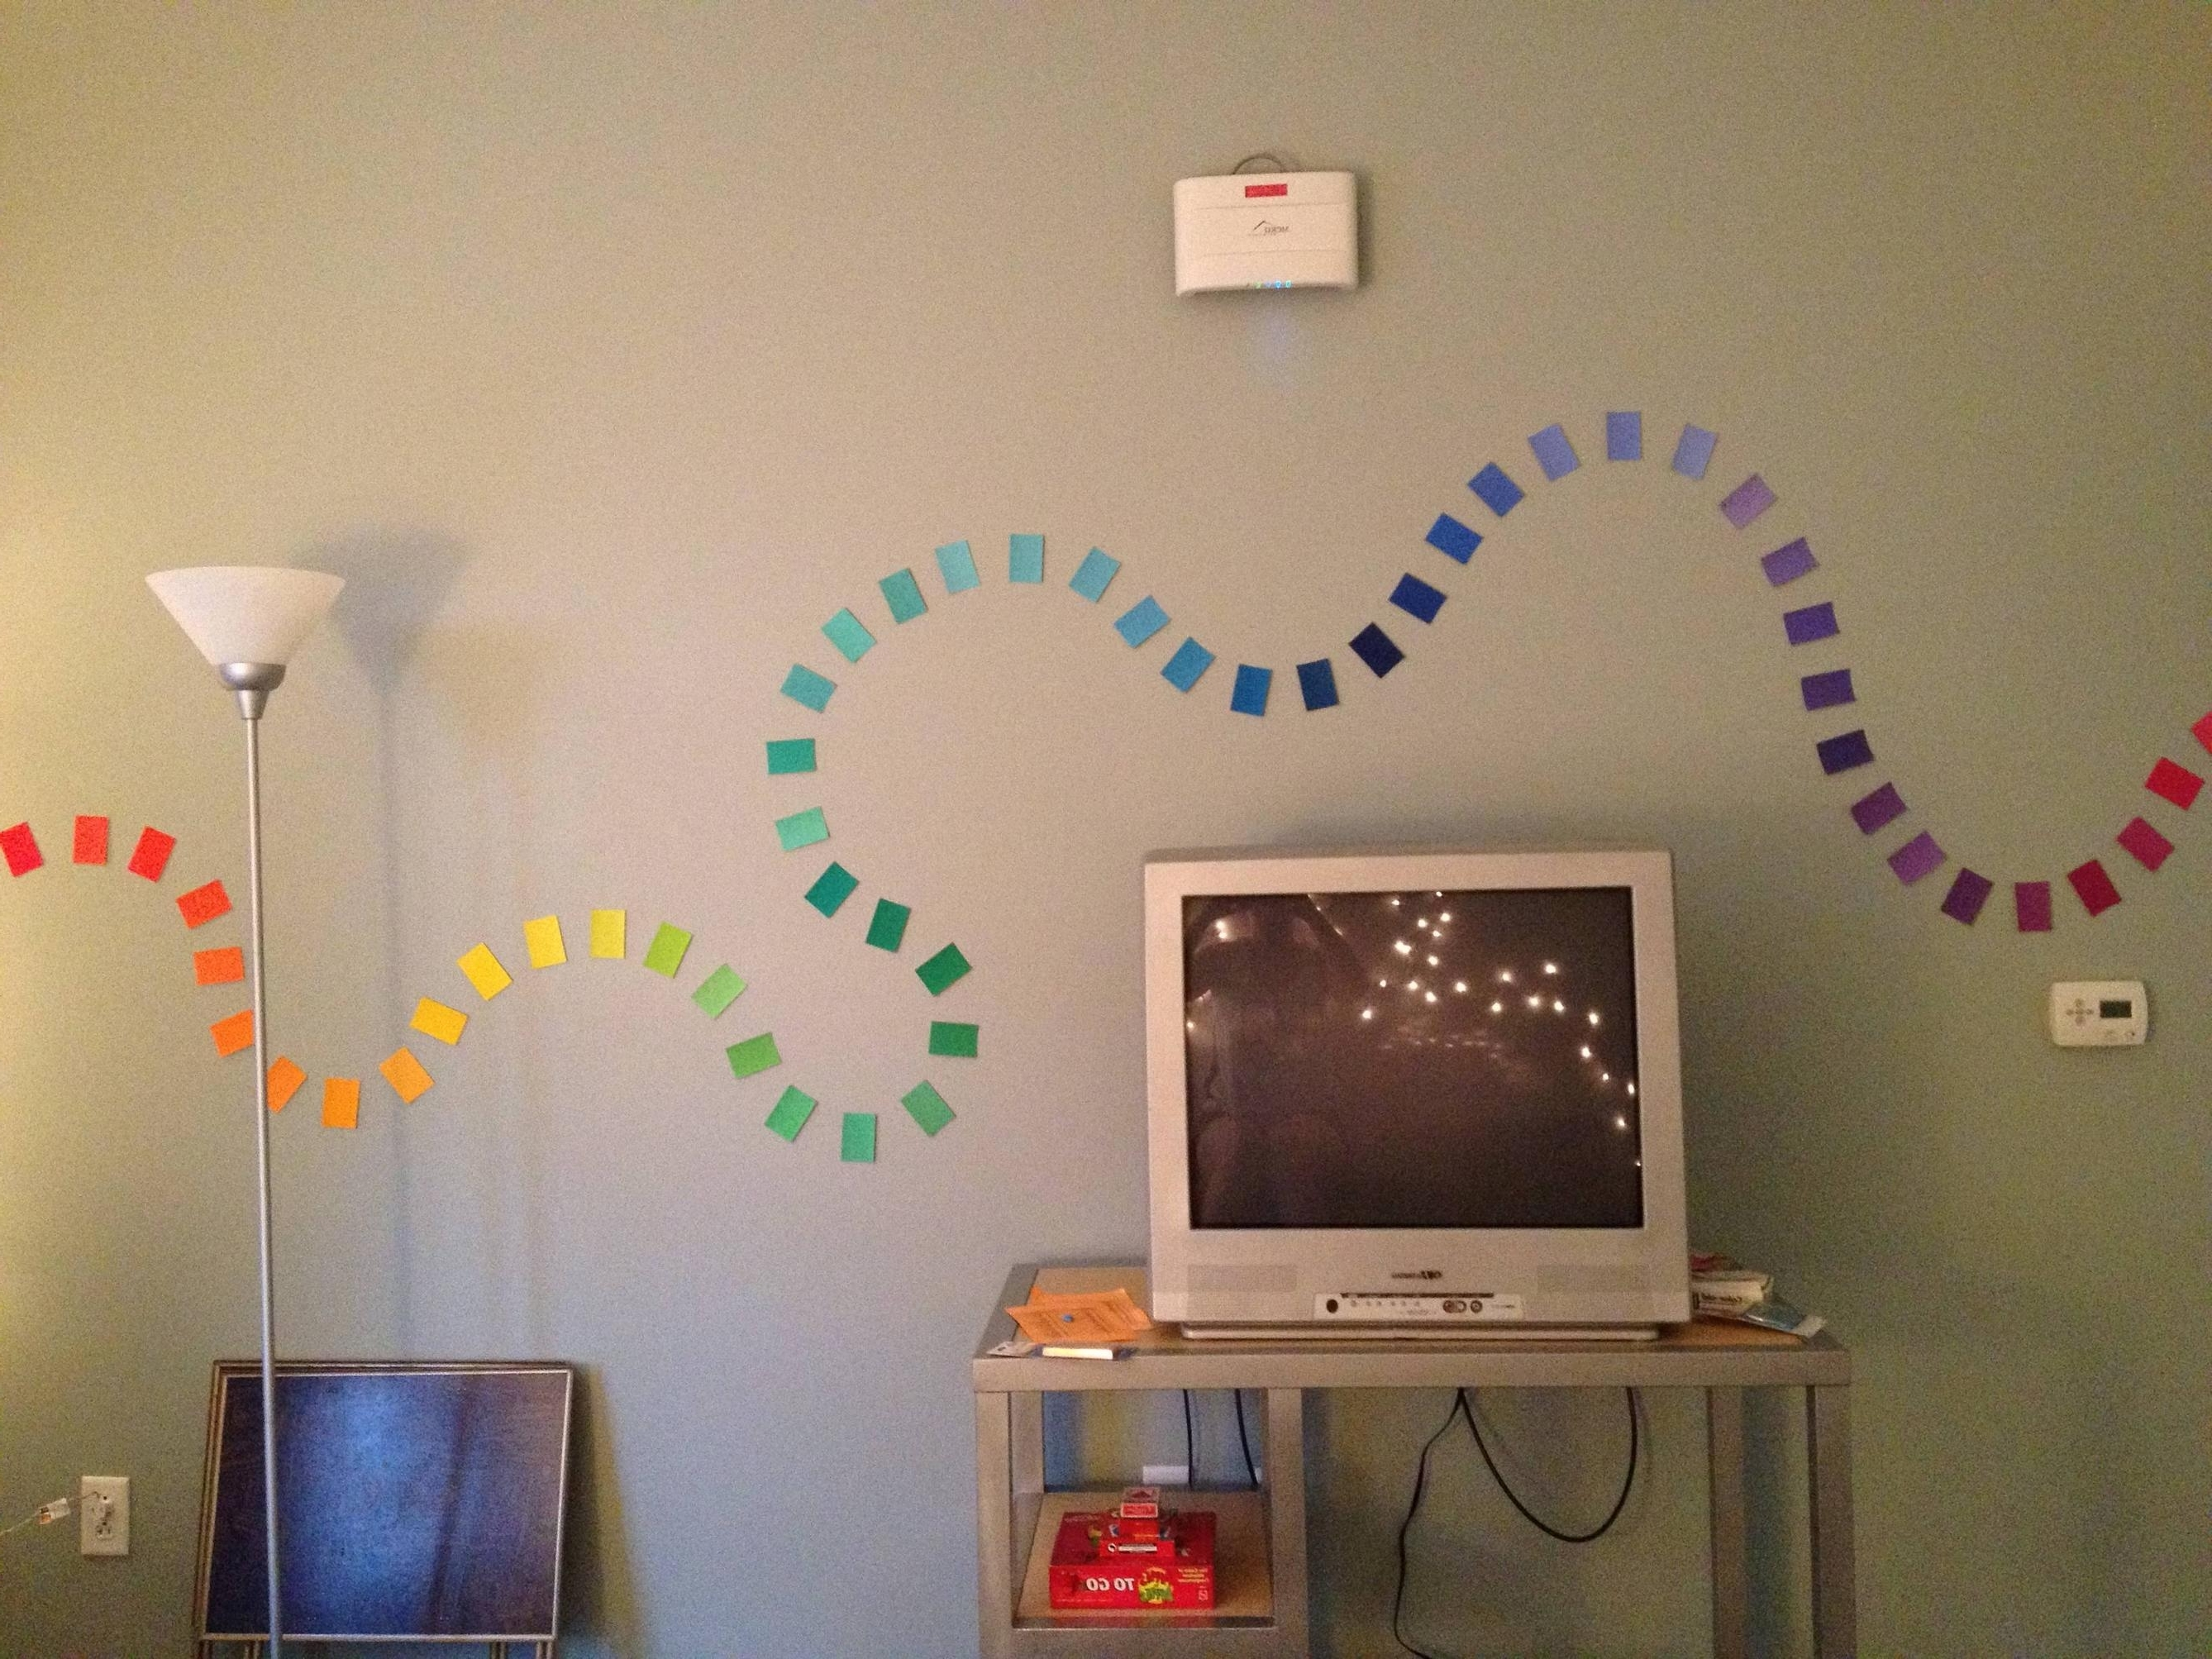 Home Decorating With Regard To Newest Paint Swatch Wall Art (View 4 of 15)